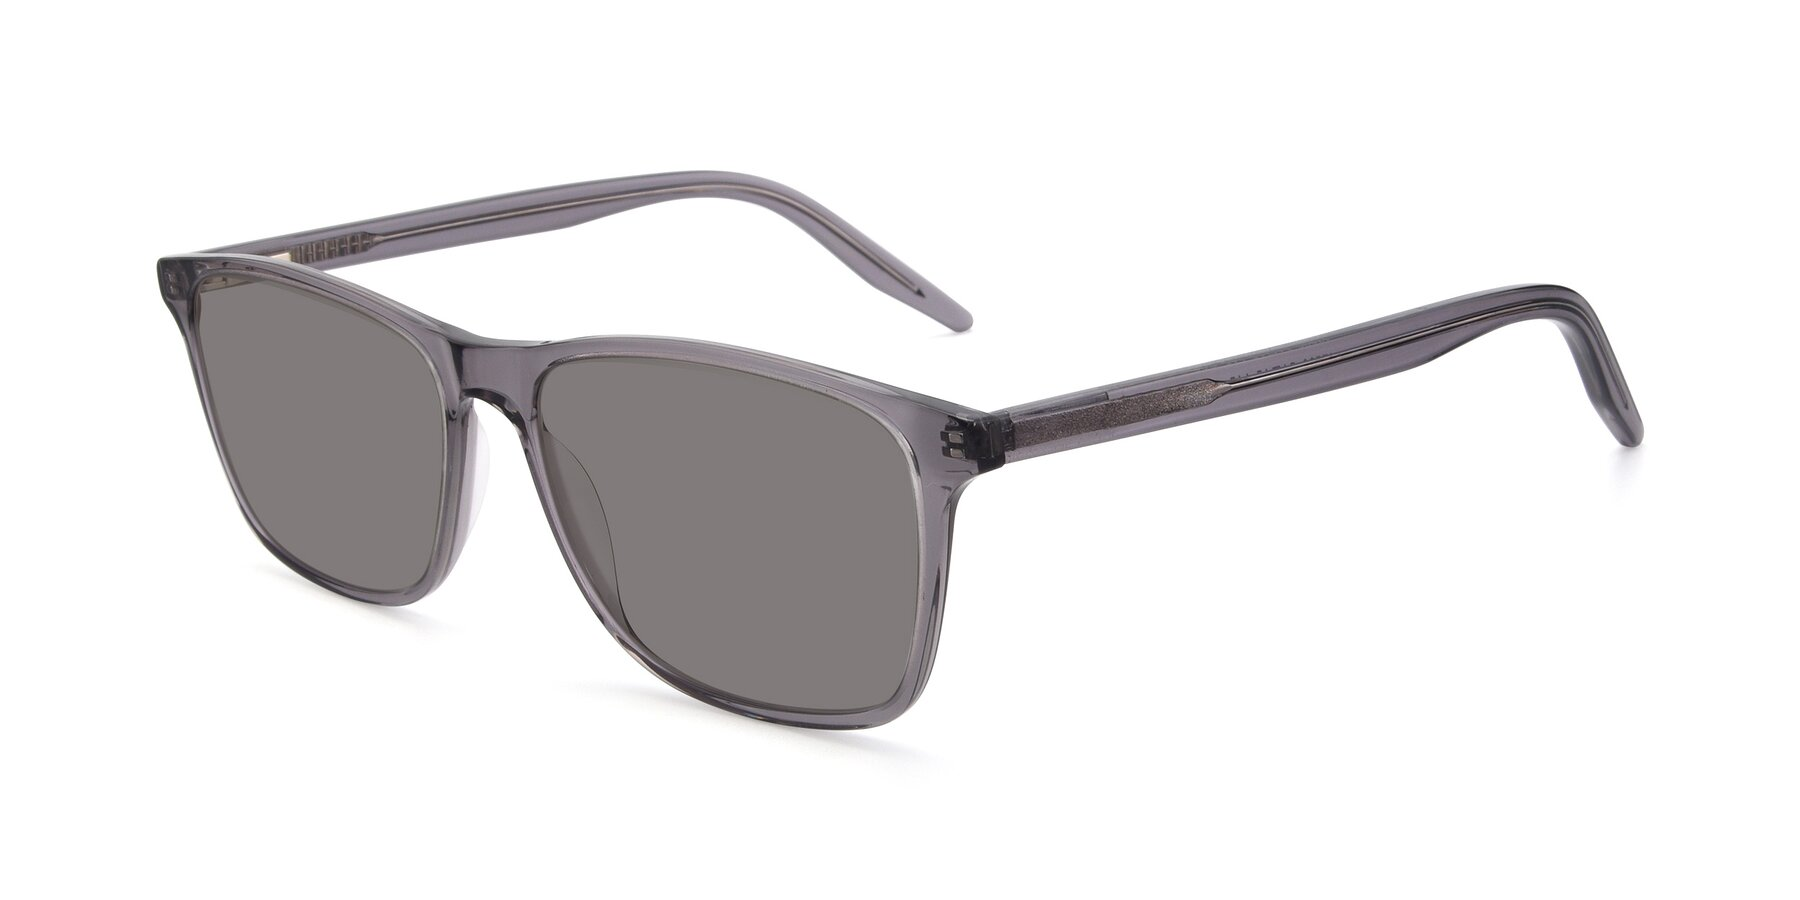 Angle of 17500 in Transparent Grey with Medium Gray Tinted Lenses